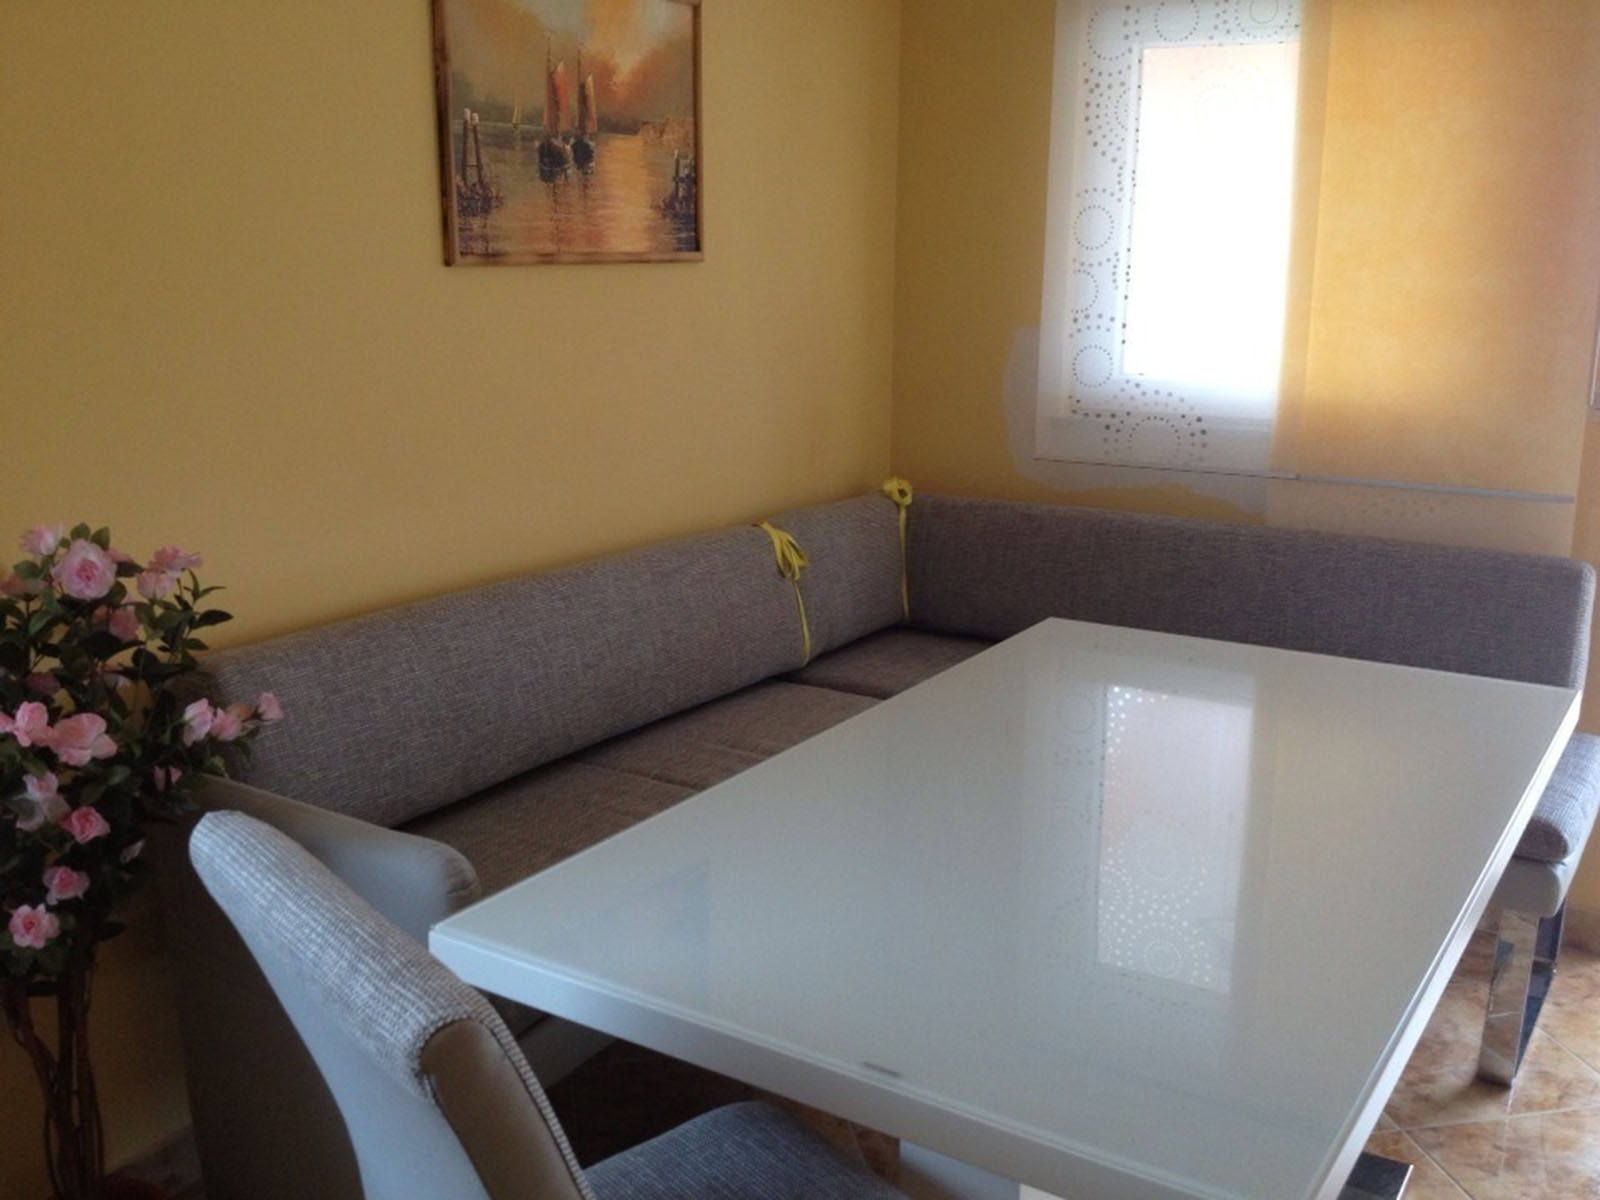 apartments4U-croatia-vir-indoor-3